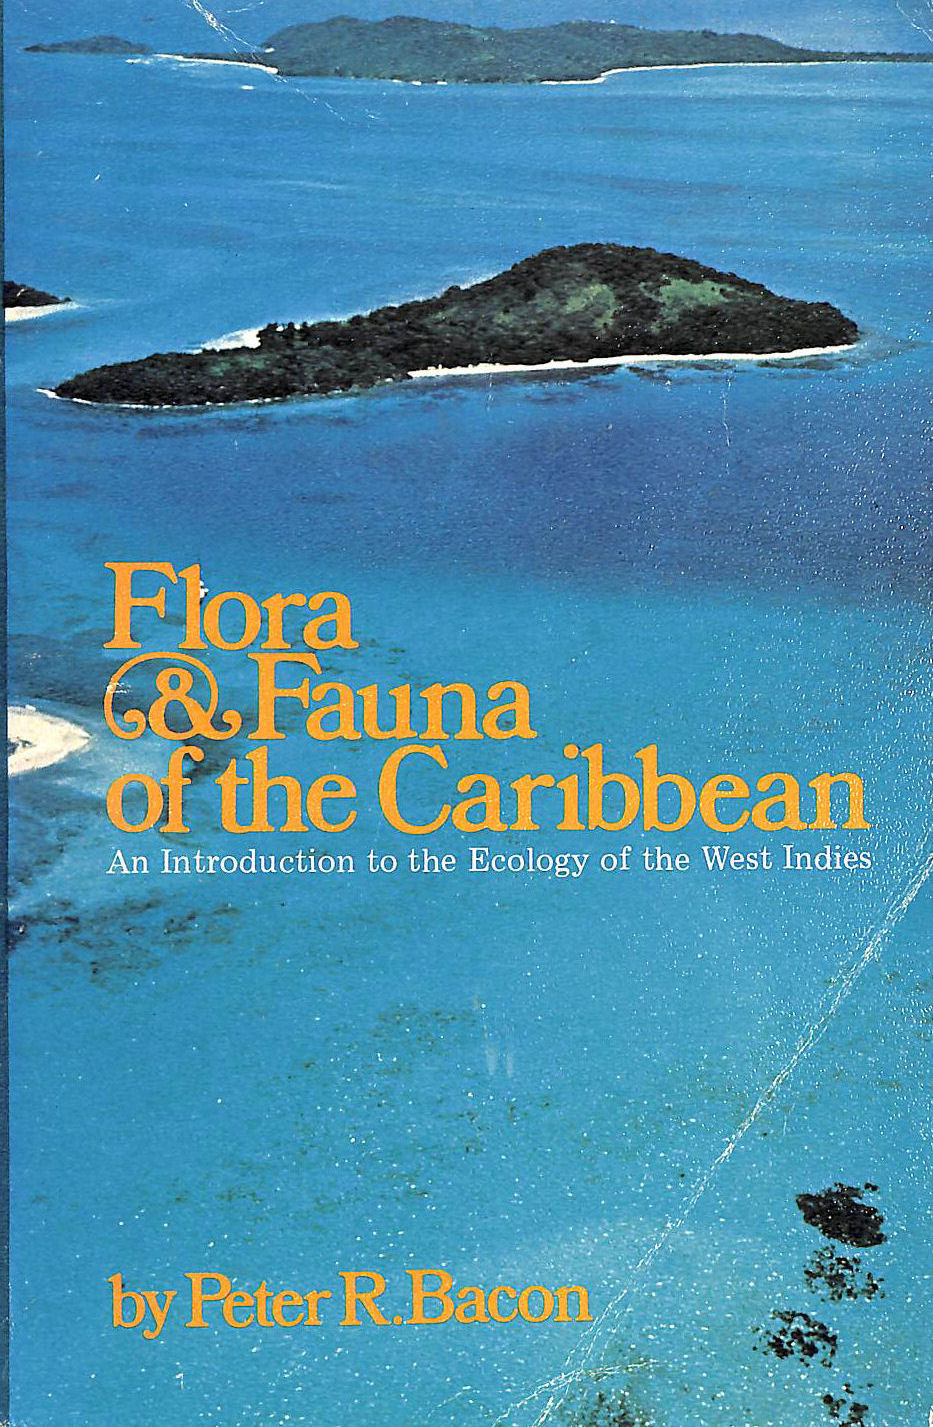 Image for Flora & fauna of the Caribbean: An introduction to the ecology of the West Indies